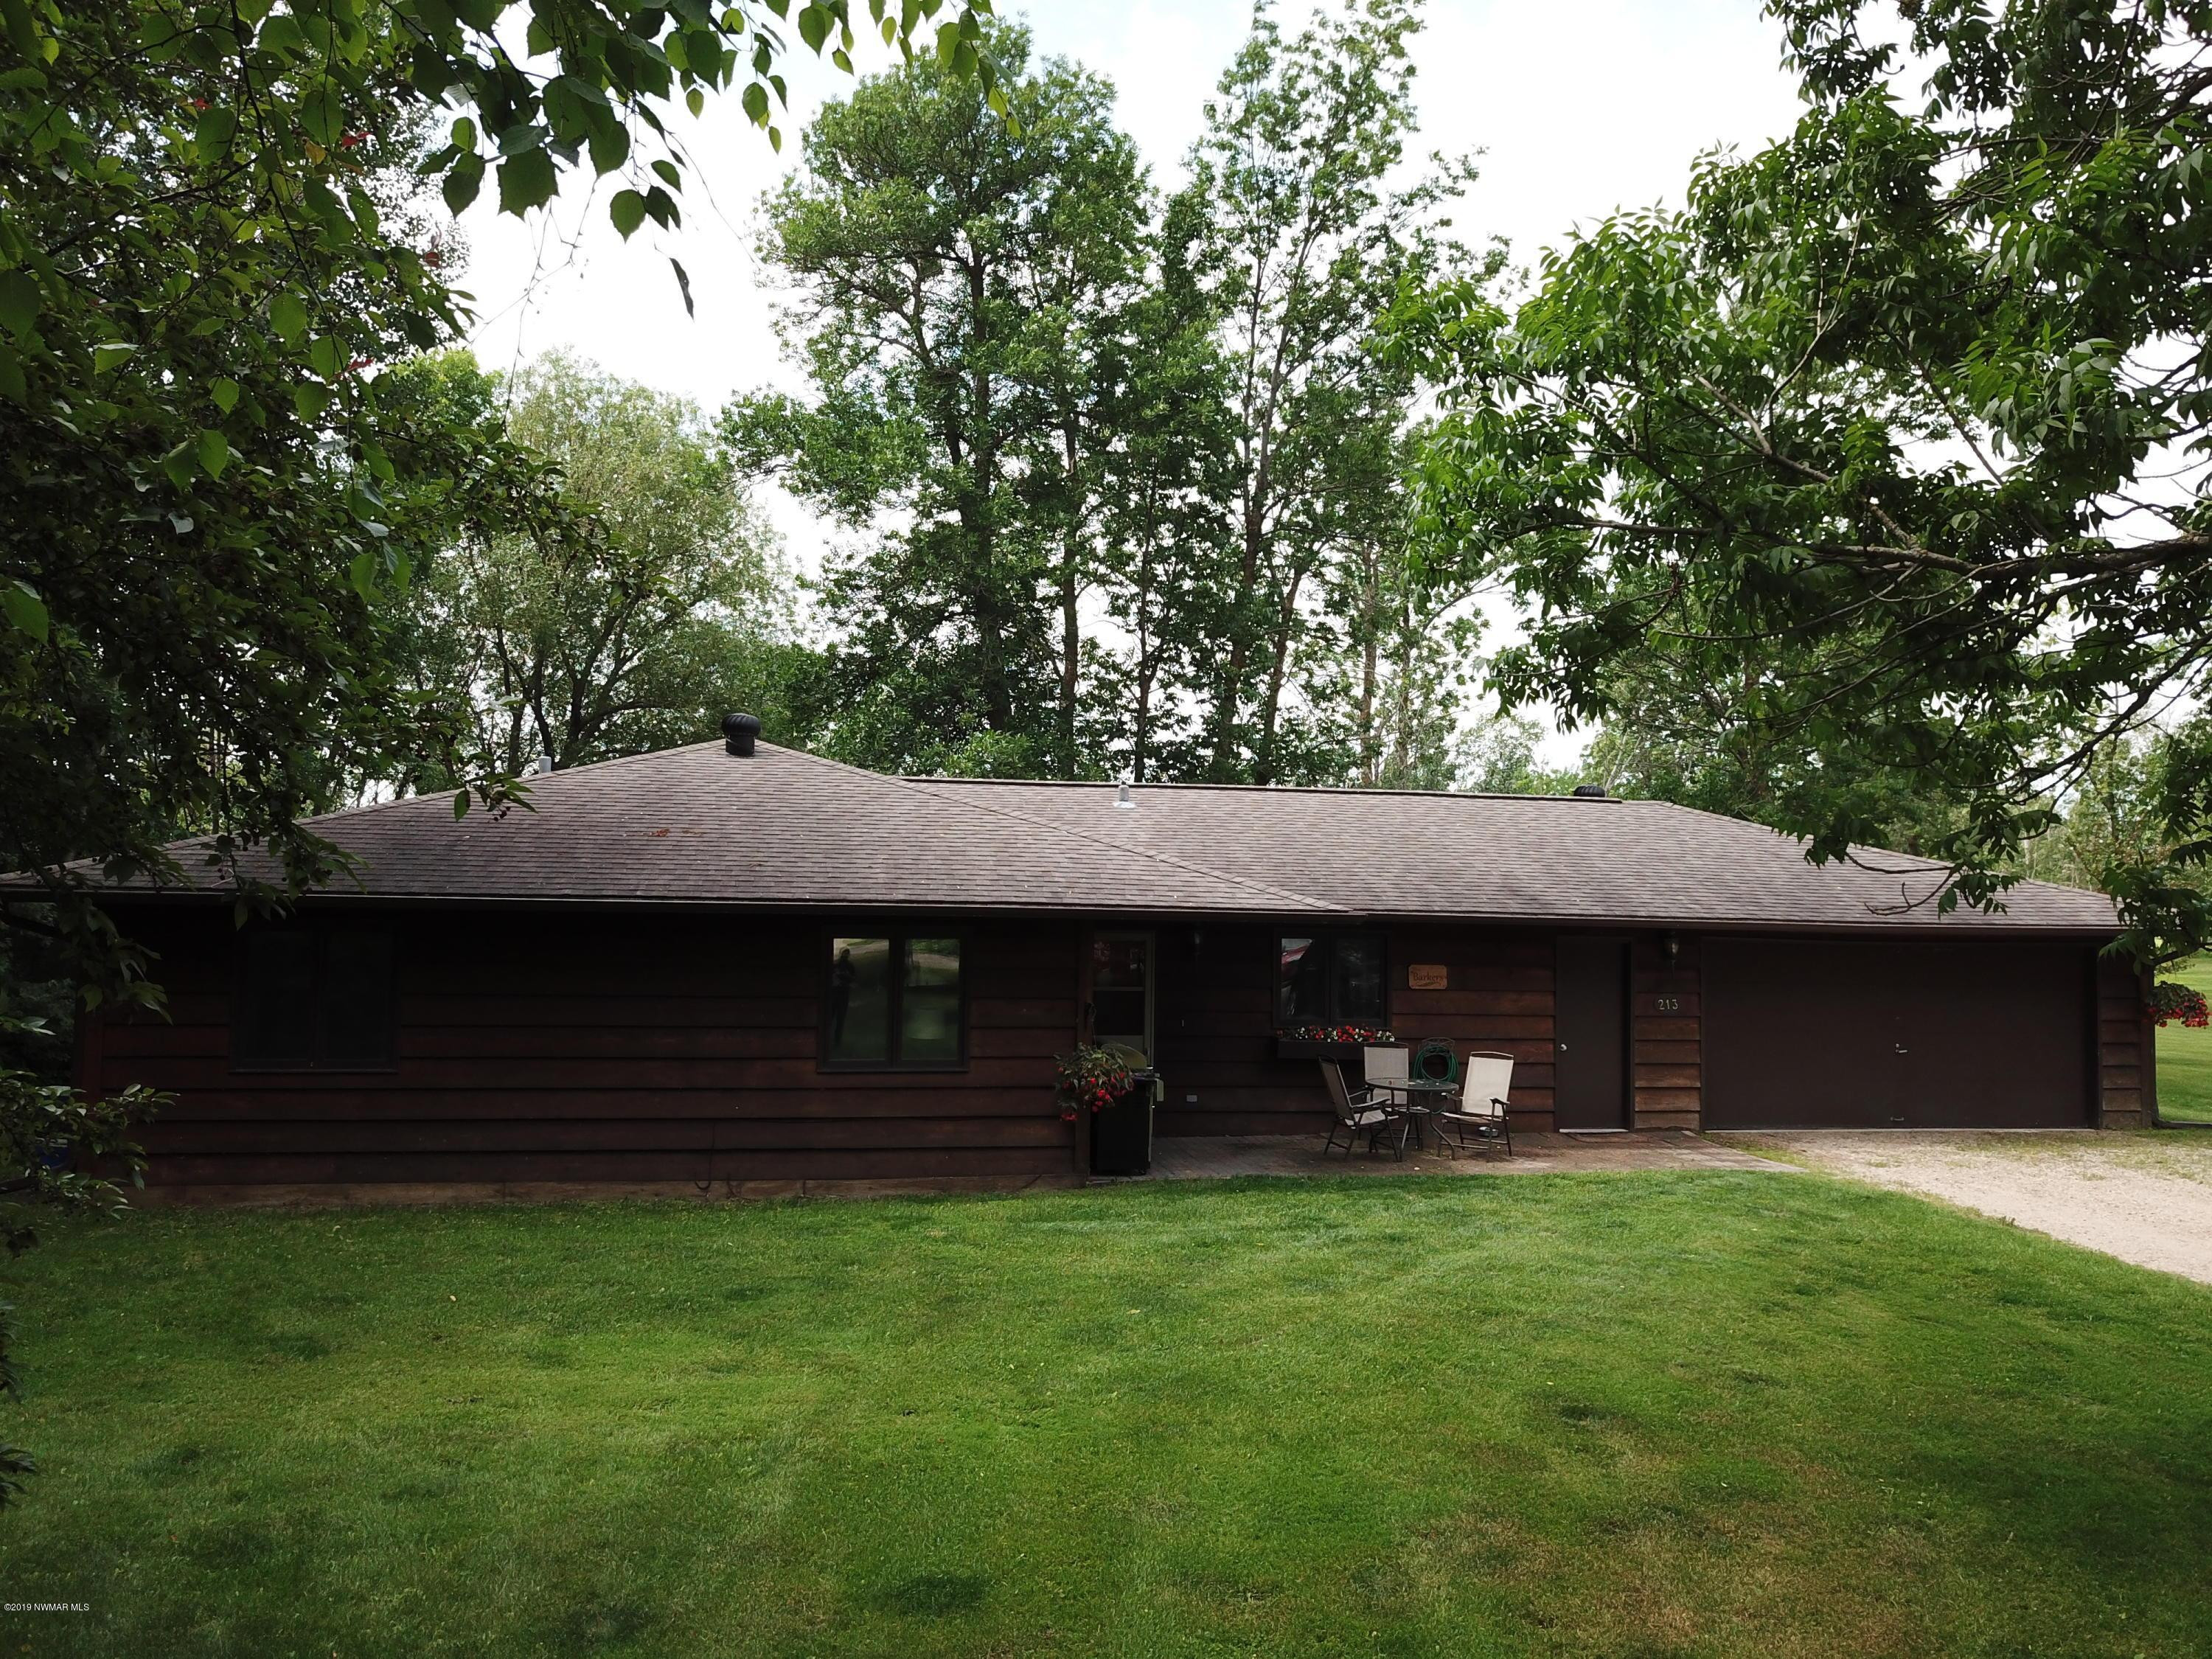 37532 Birch Drive N, Warroad, MN 56763